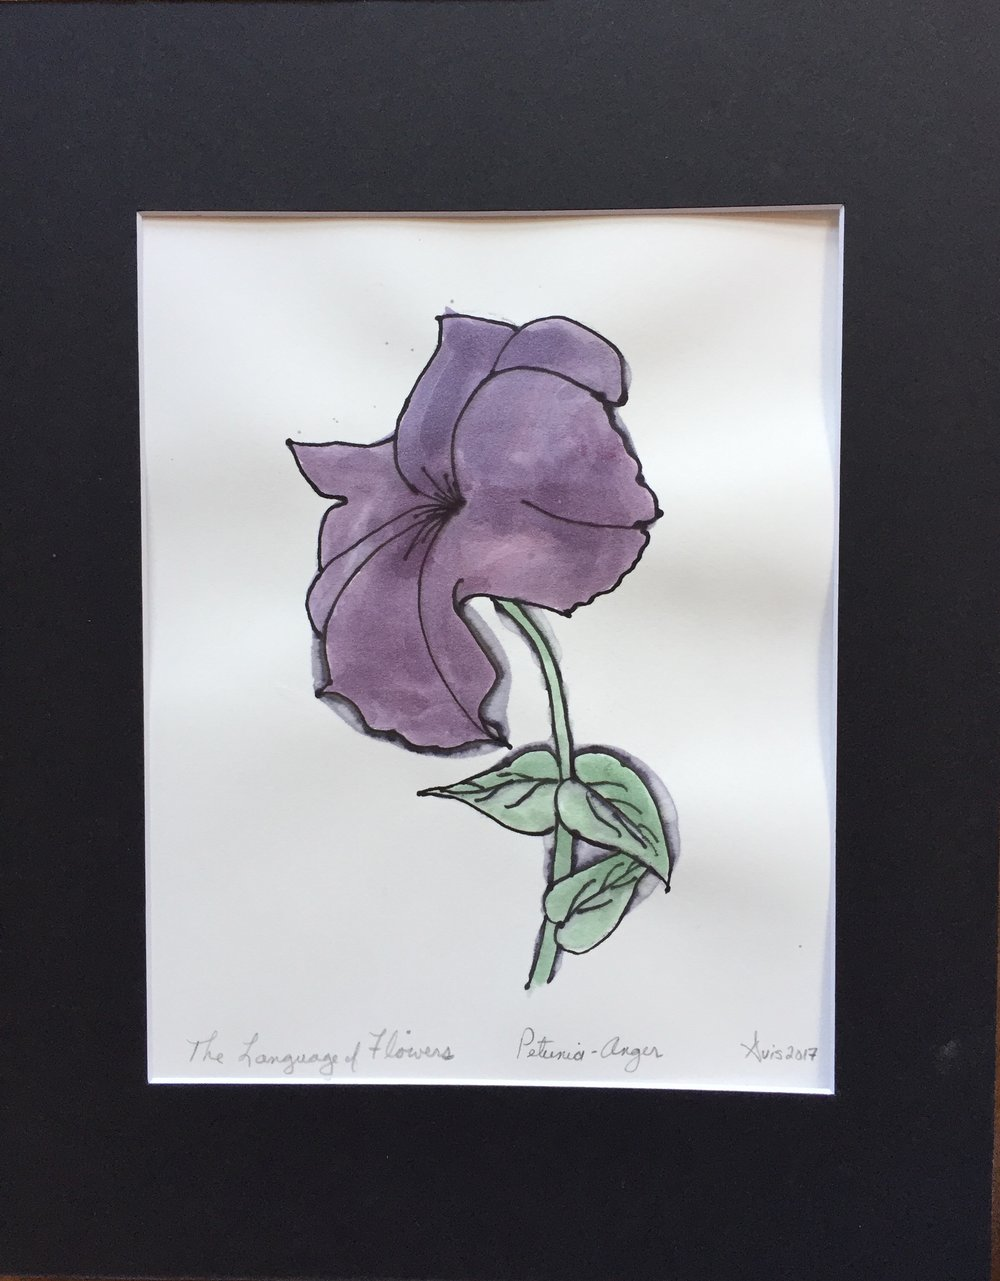 The Language of Flowers, Petunia-Anger.